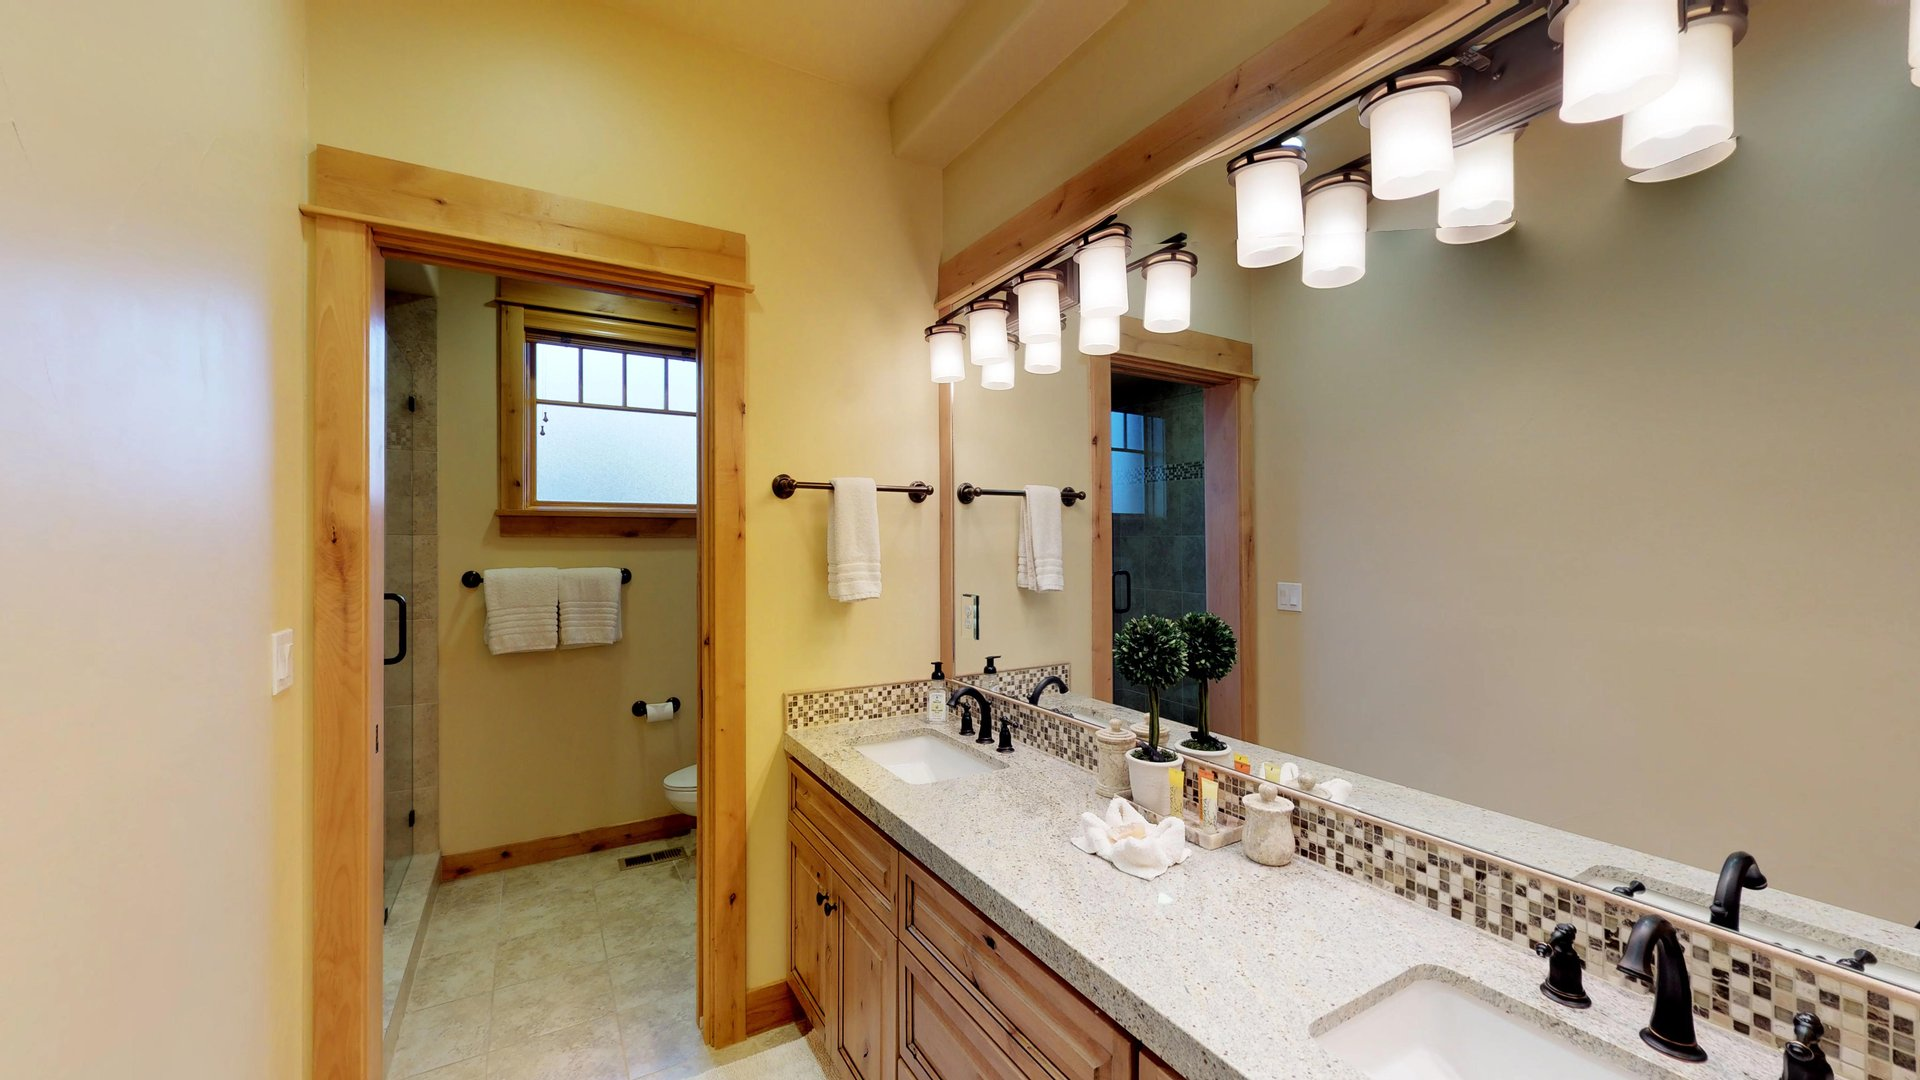 Large Bathroom Includes Two Sinks and Mirror.